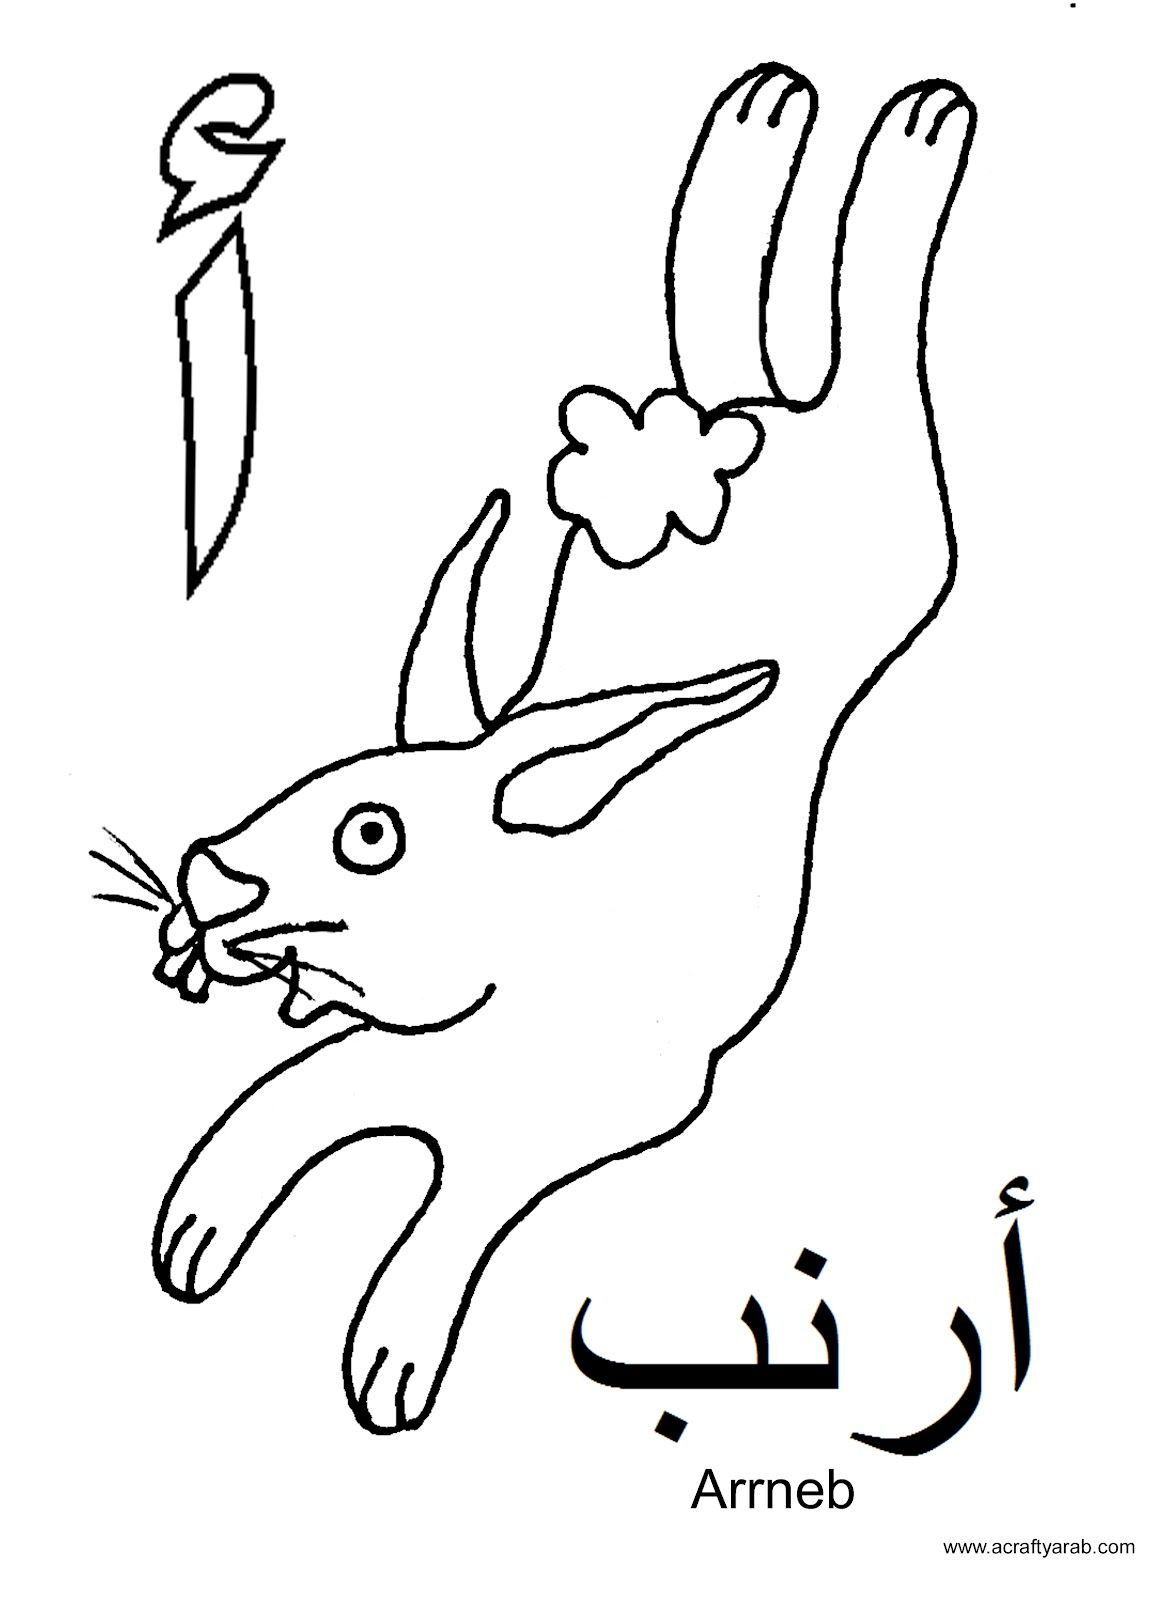 Arabic Alphabet Coloring Pages Alif Is For Arrnab Arabic